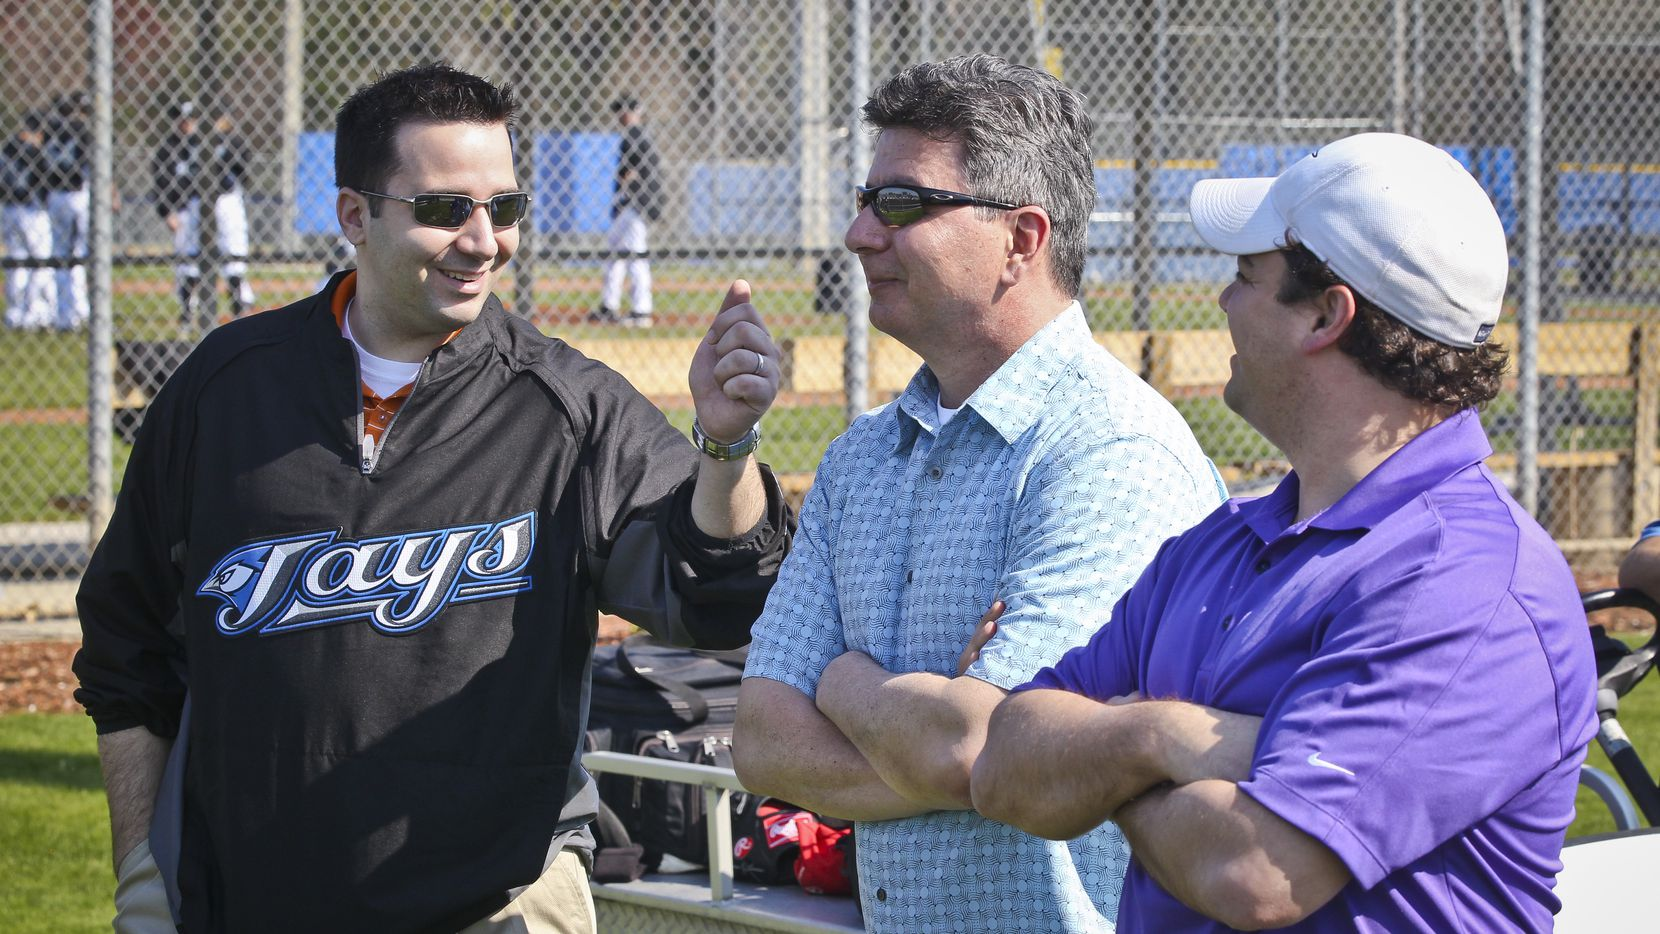 Feb 16 2011- An animated Blue Jays G.M. Alex Anthopoulos talks with Tony LaCava, and Director of Pro Scouting Perry Minasian (right) during the 3rd day at the Cecil B. Englebert Complex, in Dunedin, as pitchers and catchers report for spring training. (Photo by David Cooper/Toronto Star via Getty Images)